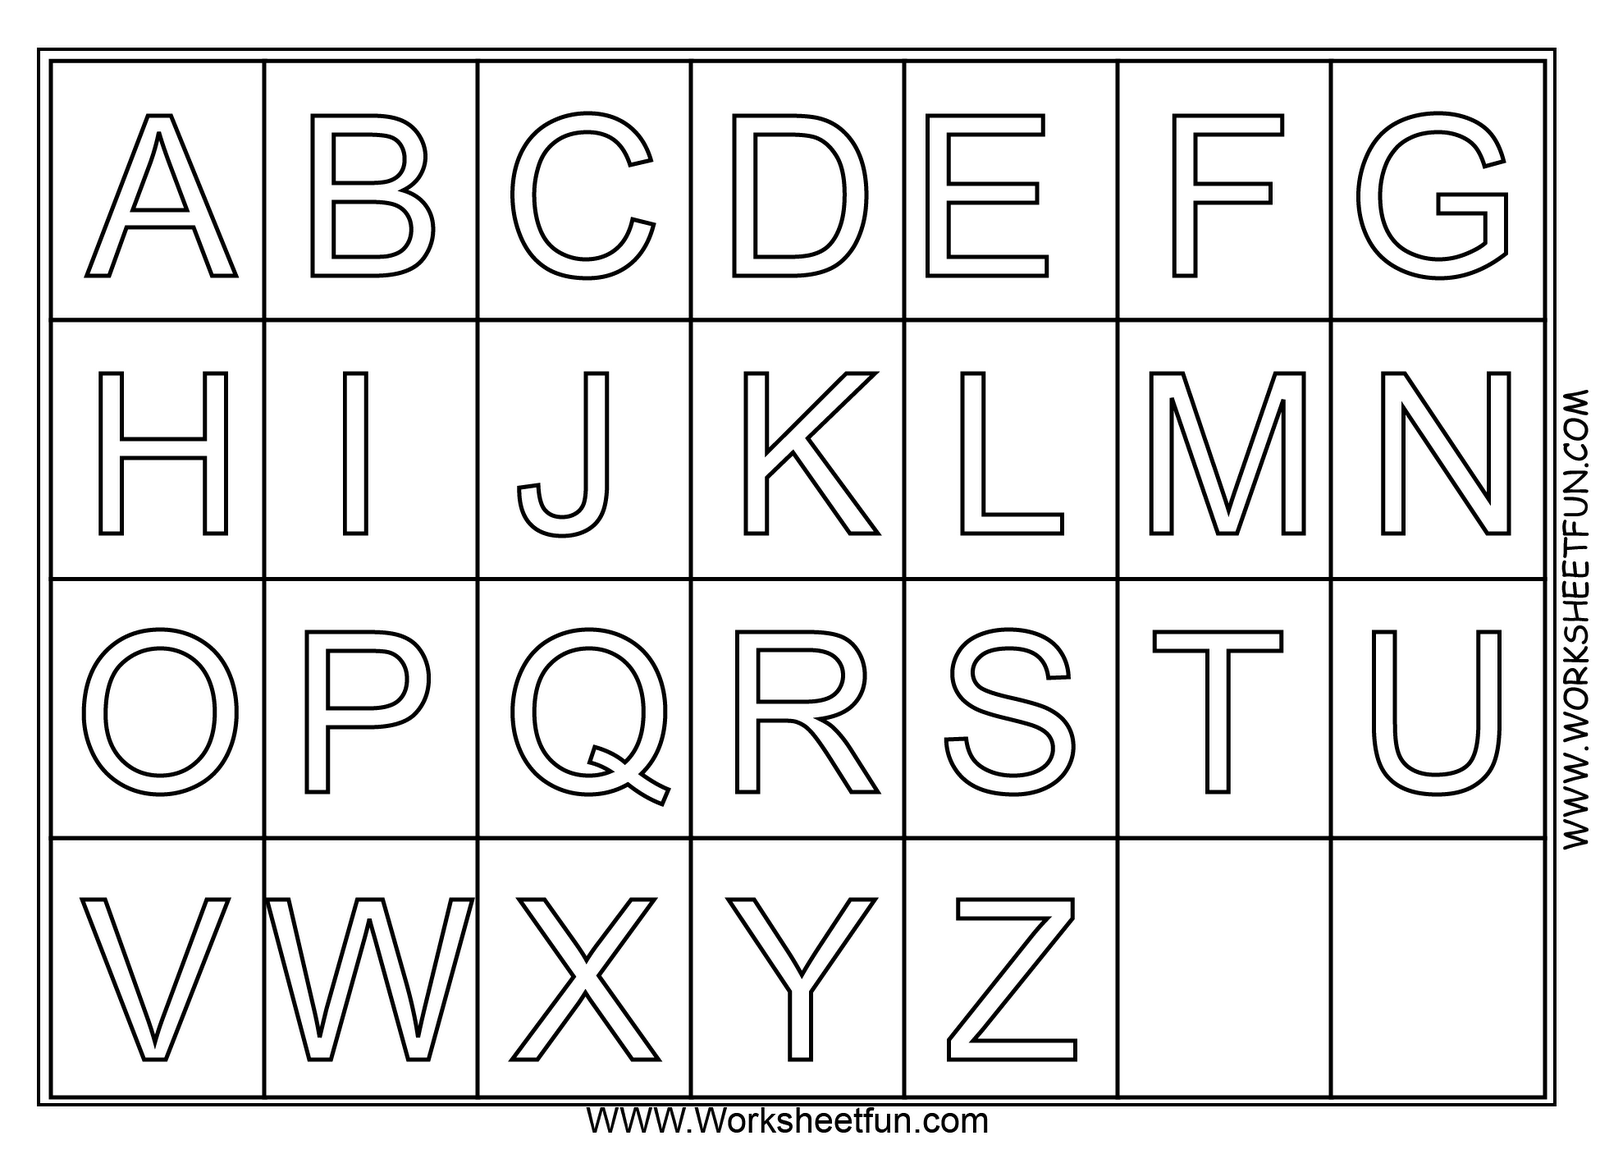 Alphabet i coloring pages - A Z Alphabet Coloring Pages Download And Print For Free